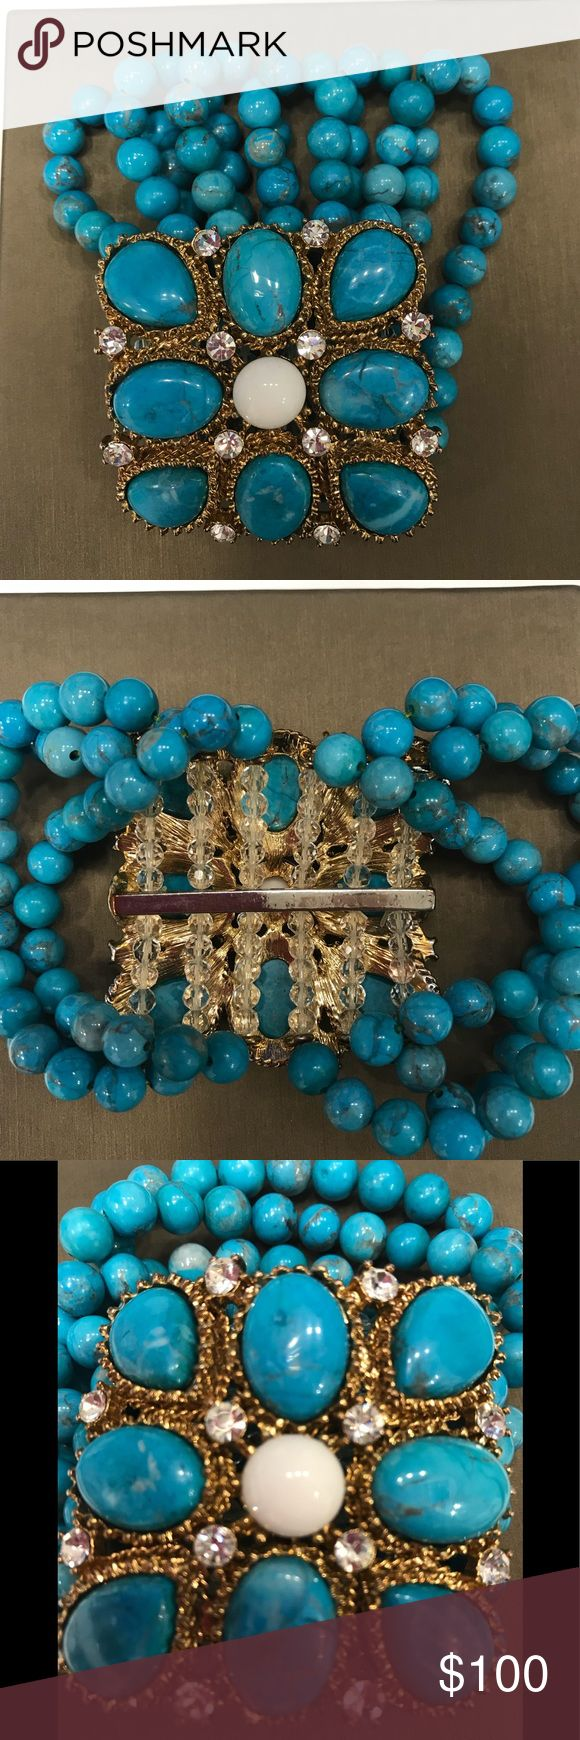 Beaded Cuff Bracelet from Neiman Marcus Never been worn turquoise colored beaded cuff bracelet. Purchased from Neiman Marcus. Stands of beads are on expandable thread to create ease in getting bracelet on and off. No missing stones or beads. Jewelry Bracelets